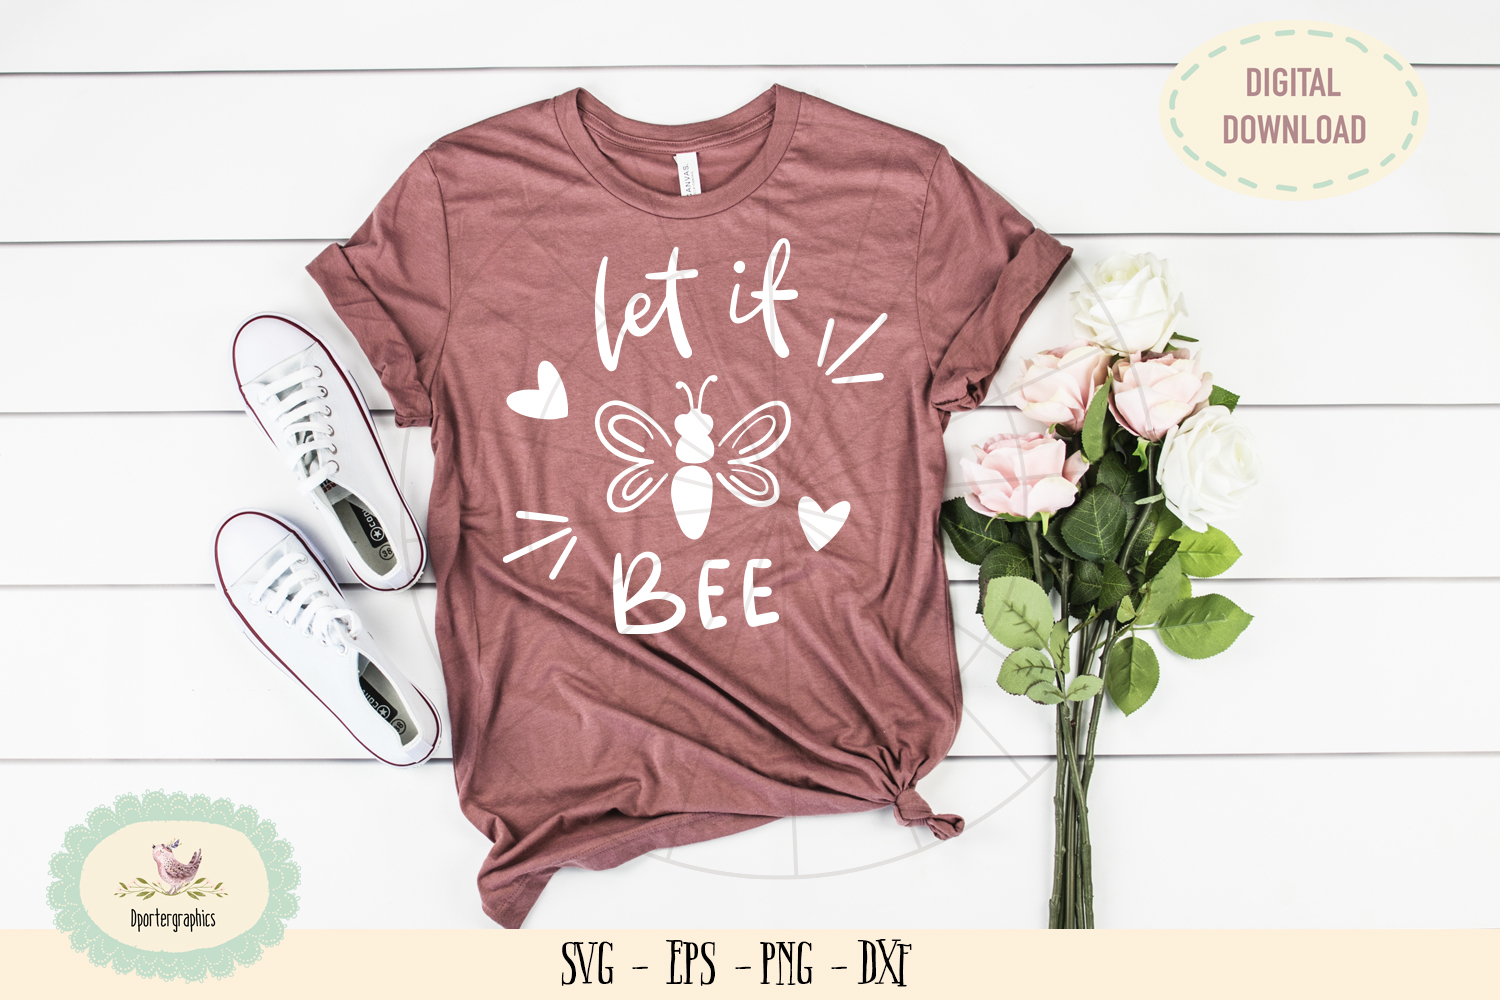 Let it bee SVG PNG hand lettered t-shirt design example image 1